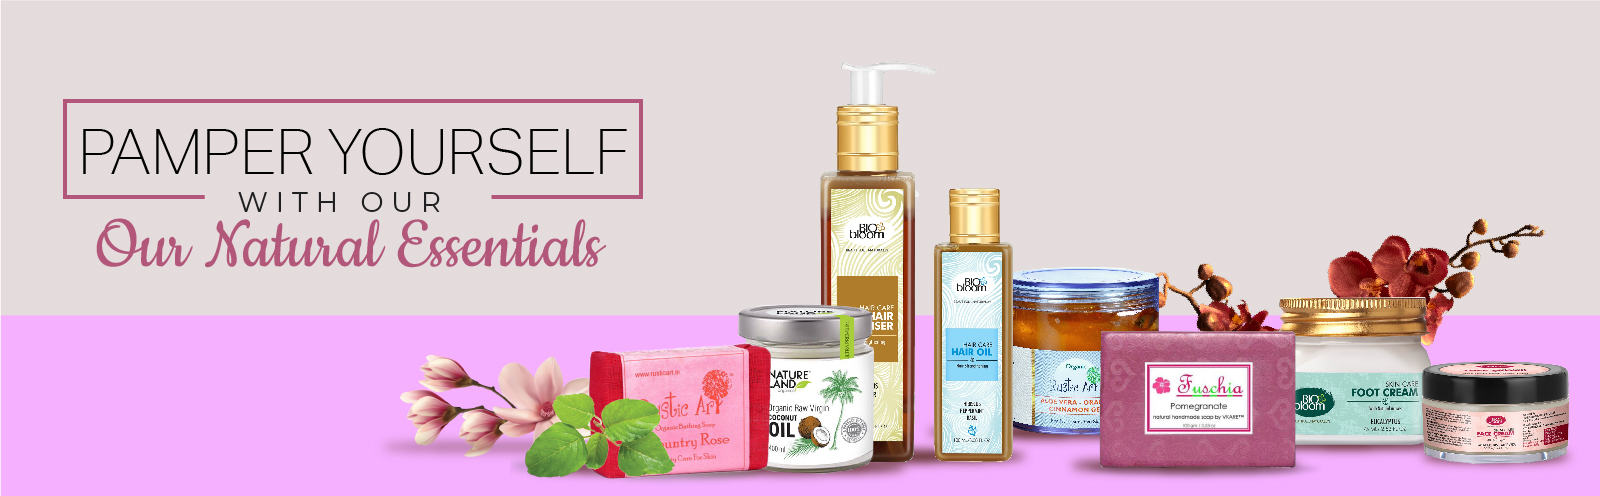 Natural Personal Care